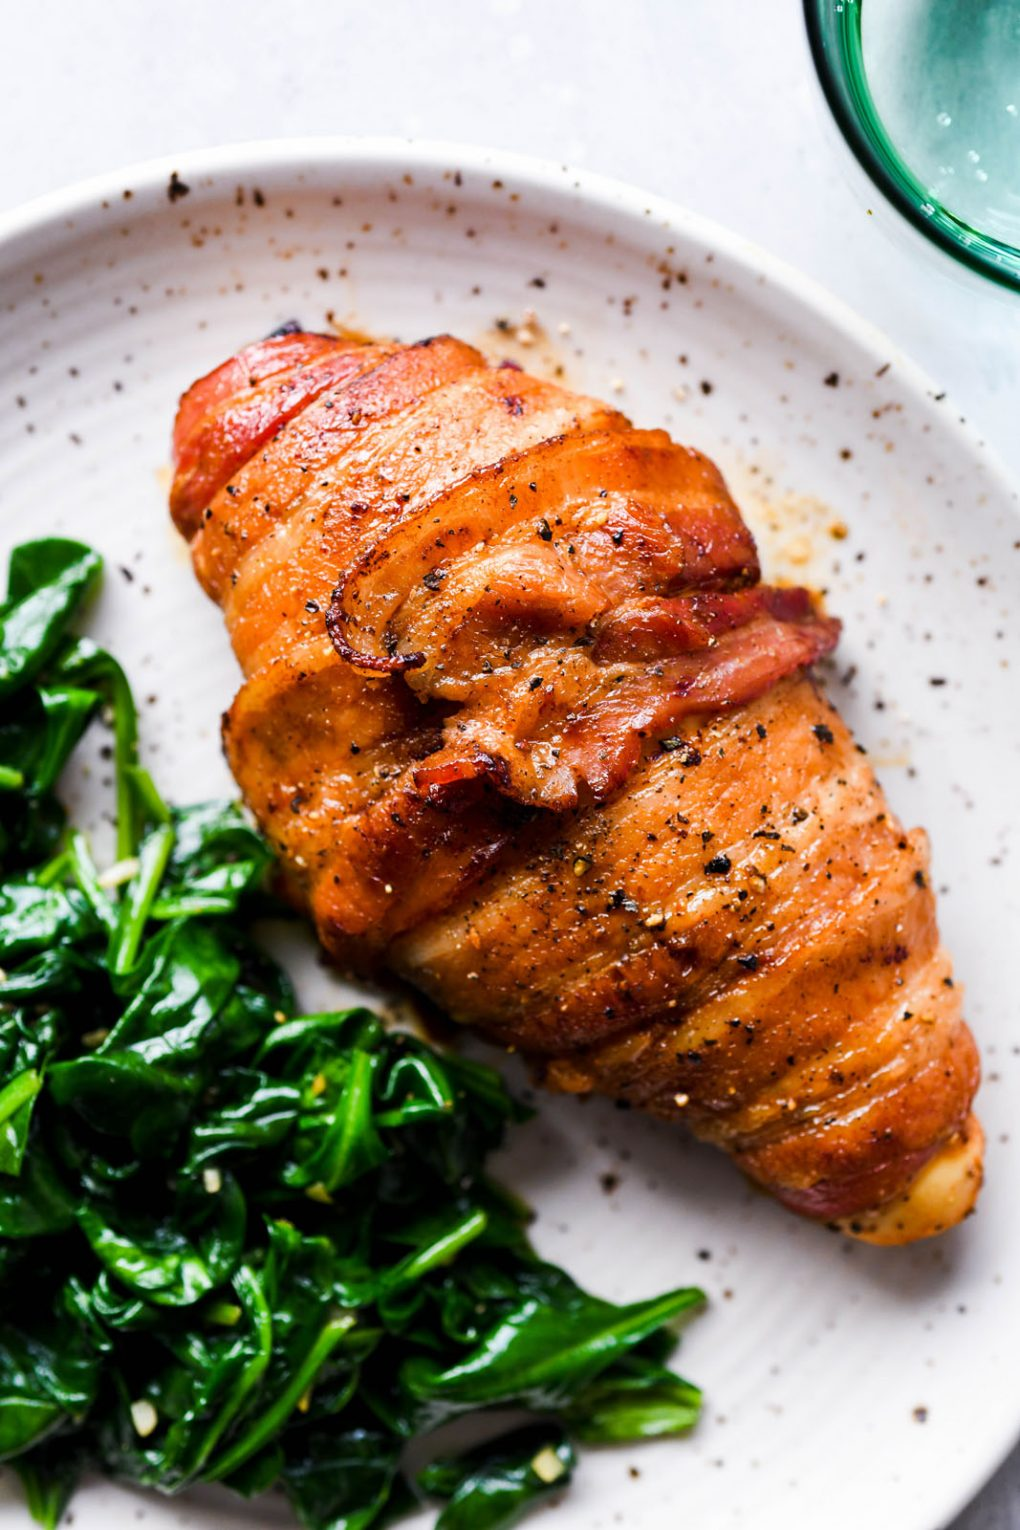 Close up image of a glistening bacon wrapped chicken breast, on a white speckled plate next to some wilted garlic spinach with a light green glass of sparkling water peeking into the corner of the frame.